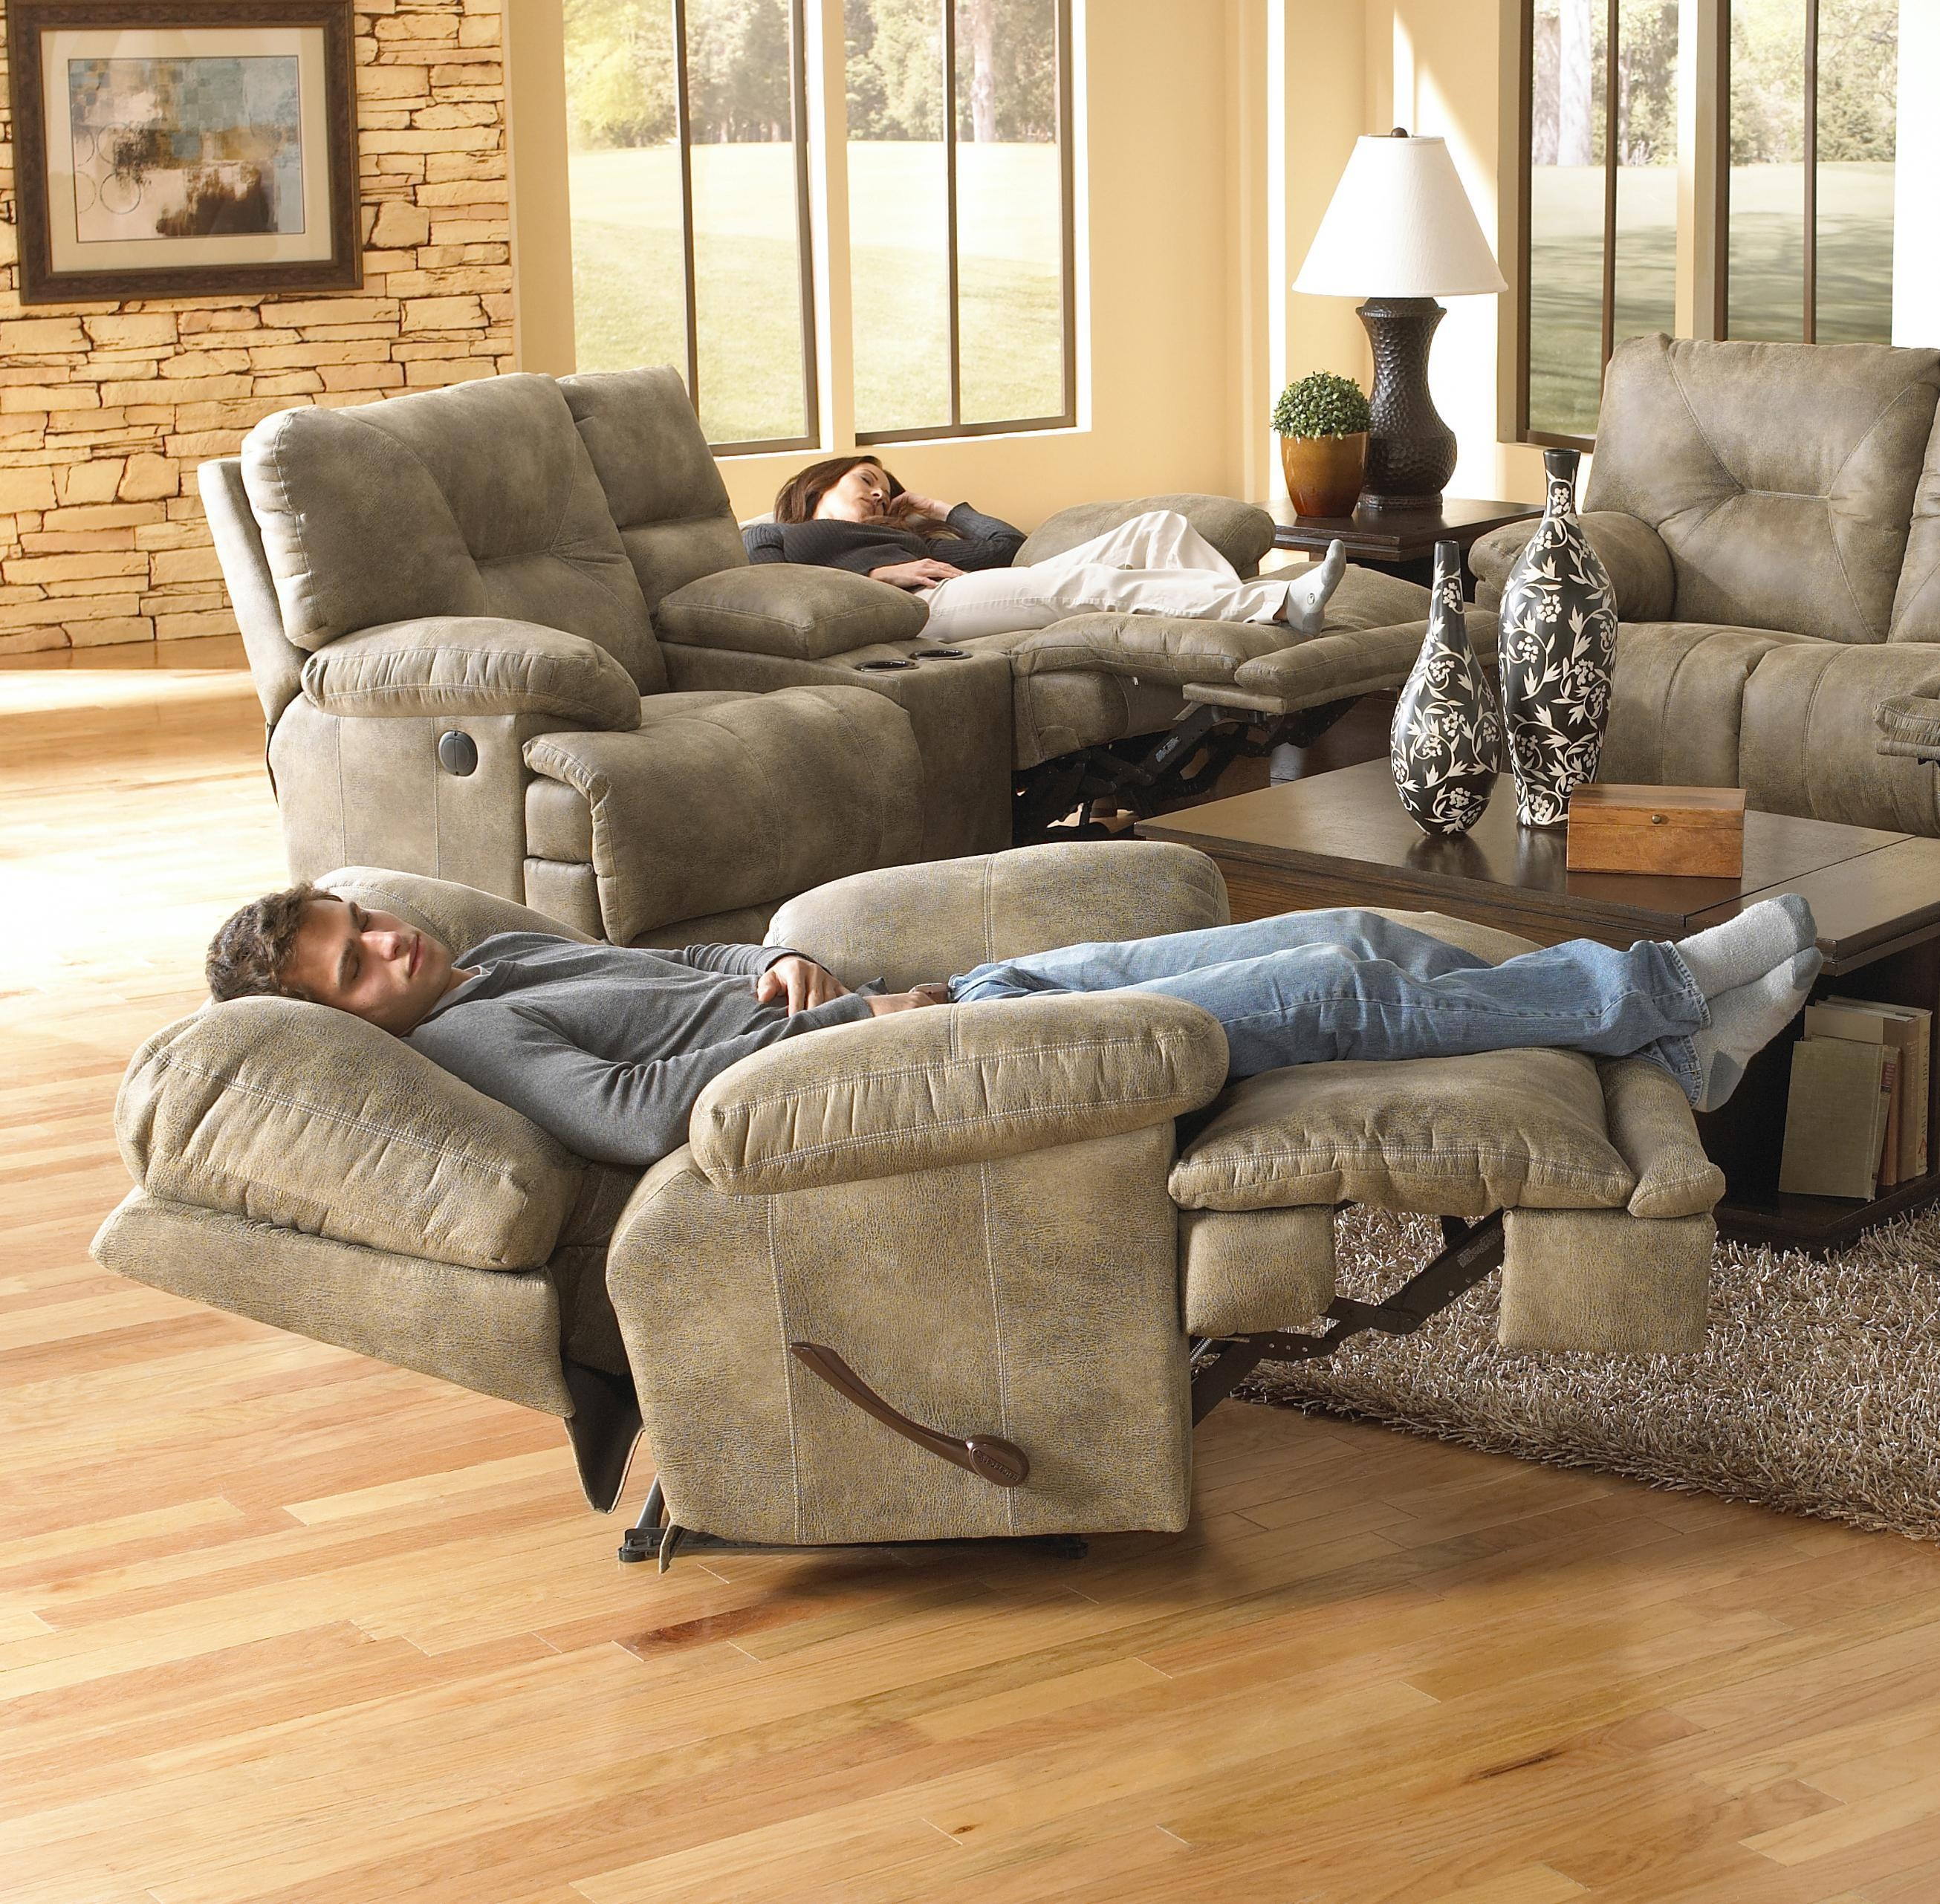 Furniture: Captivating Catnapper Recliner For Best Furniture Idea Regarding Catnapper Recliner Sofas (View 4 of 20)